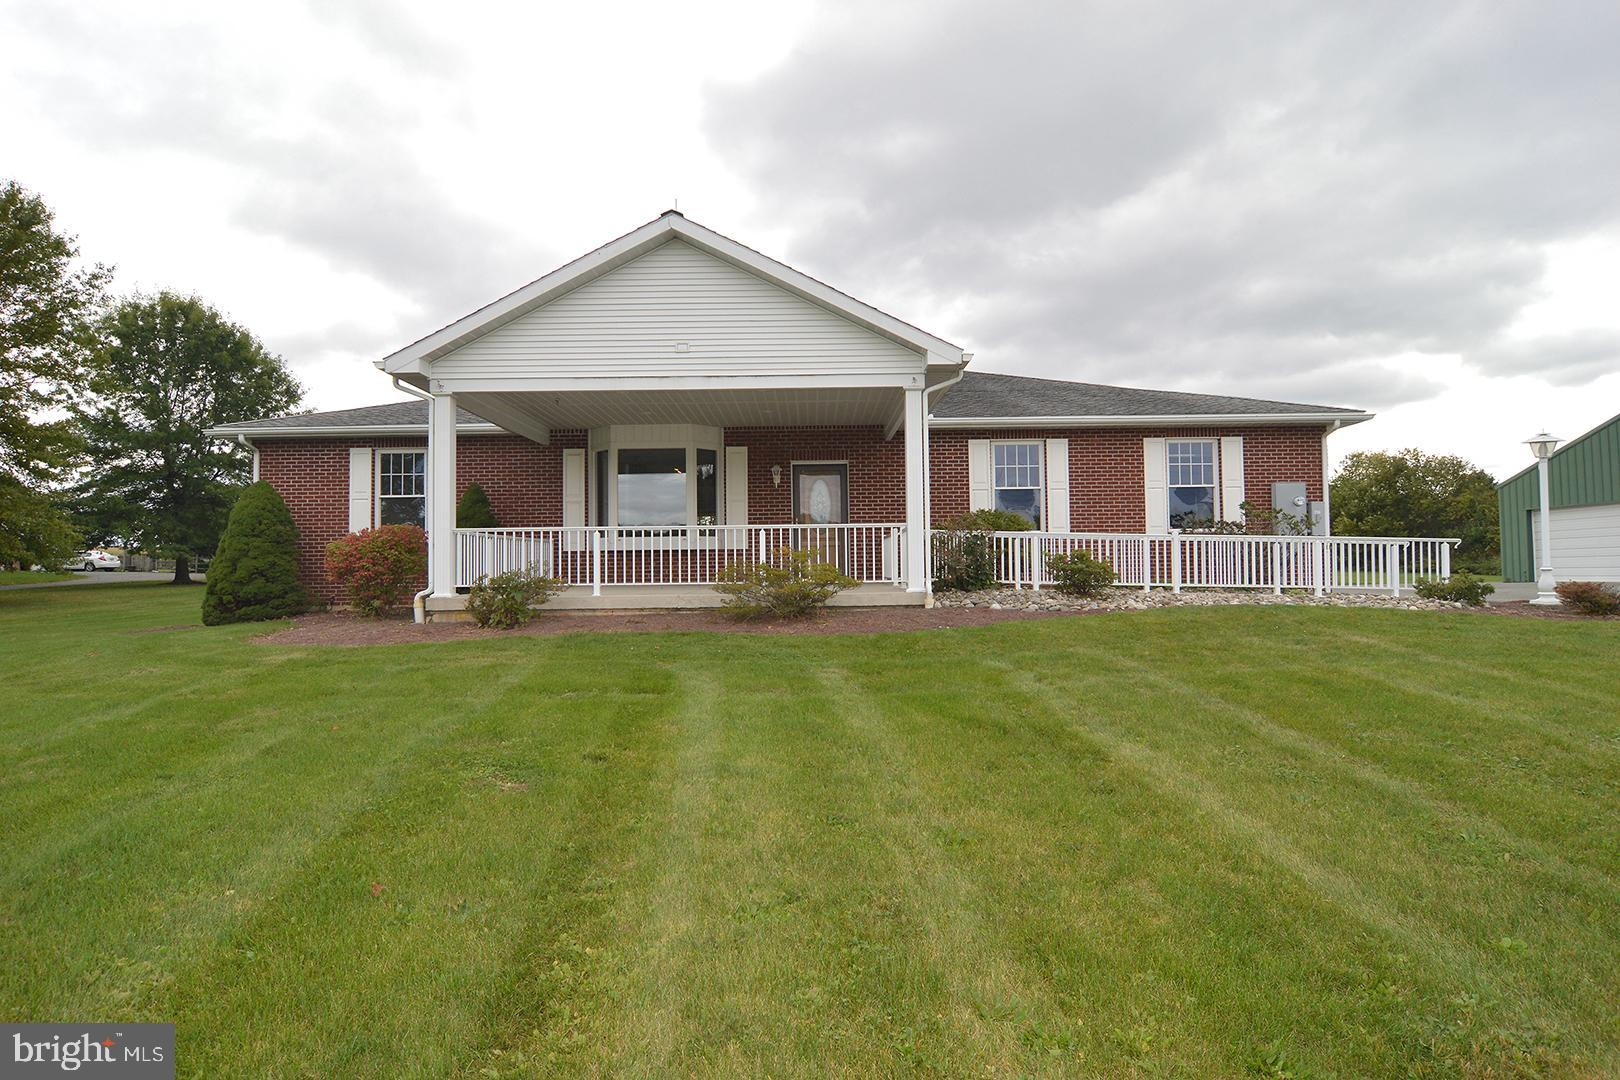 2960 SEISHOLTZVILLE ROAD, MACUNGIE, PA 18062